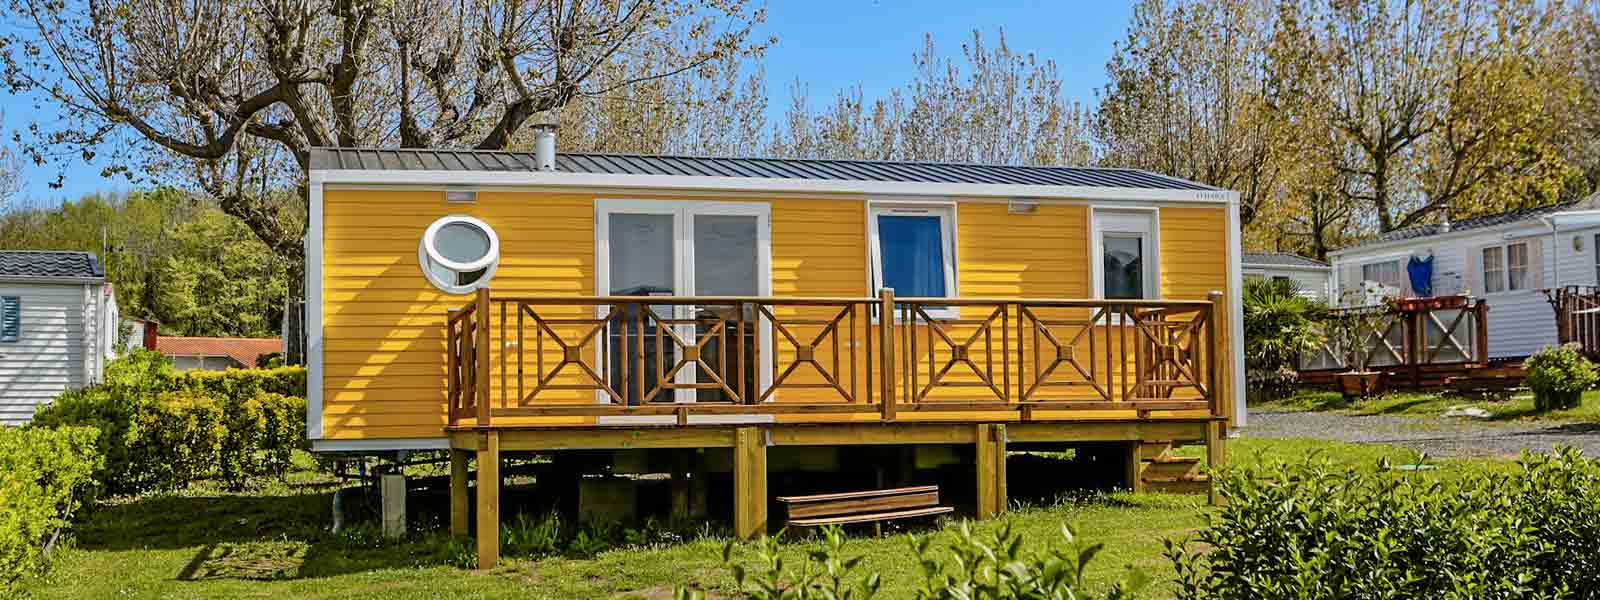 camping moustiers sainte marie